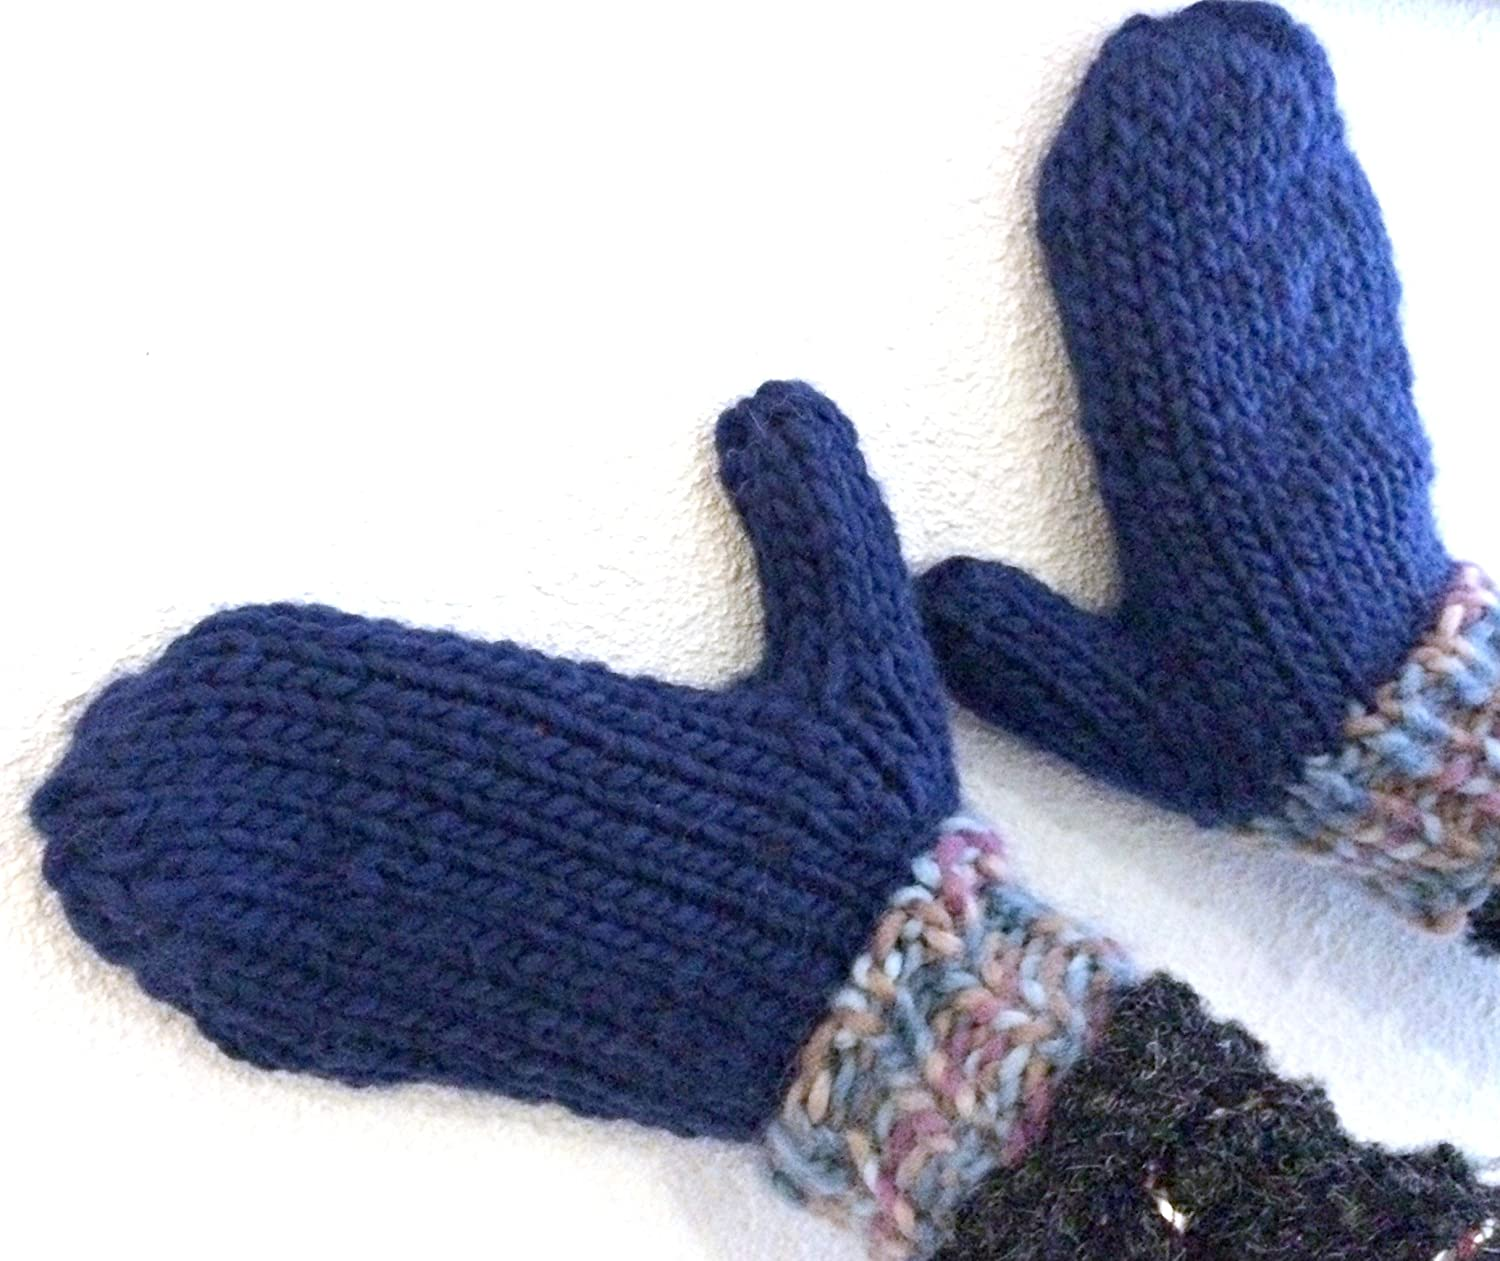 knit latvian mittens knitting fair isle arm warmers winter gloves men mittens, colorful mitts Hand knitted wool mittens Mittens